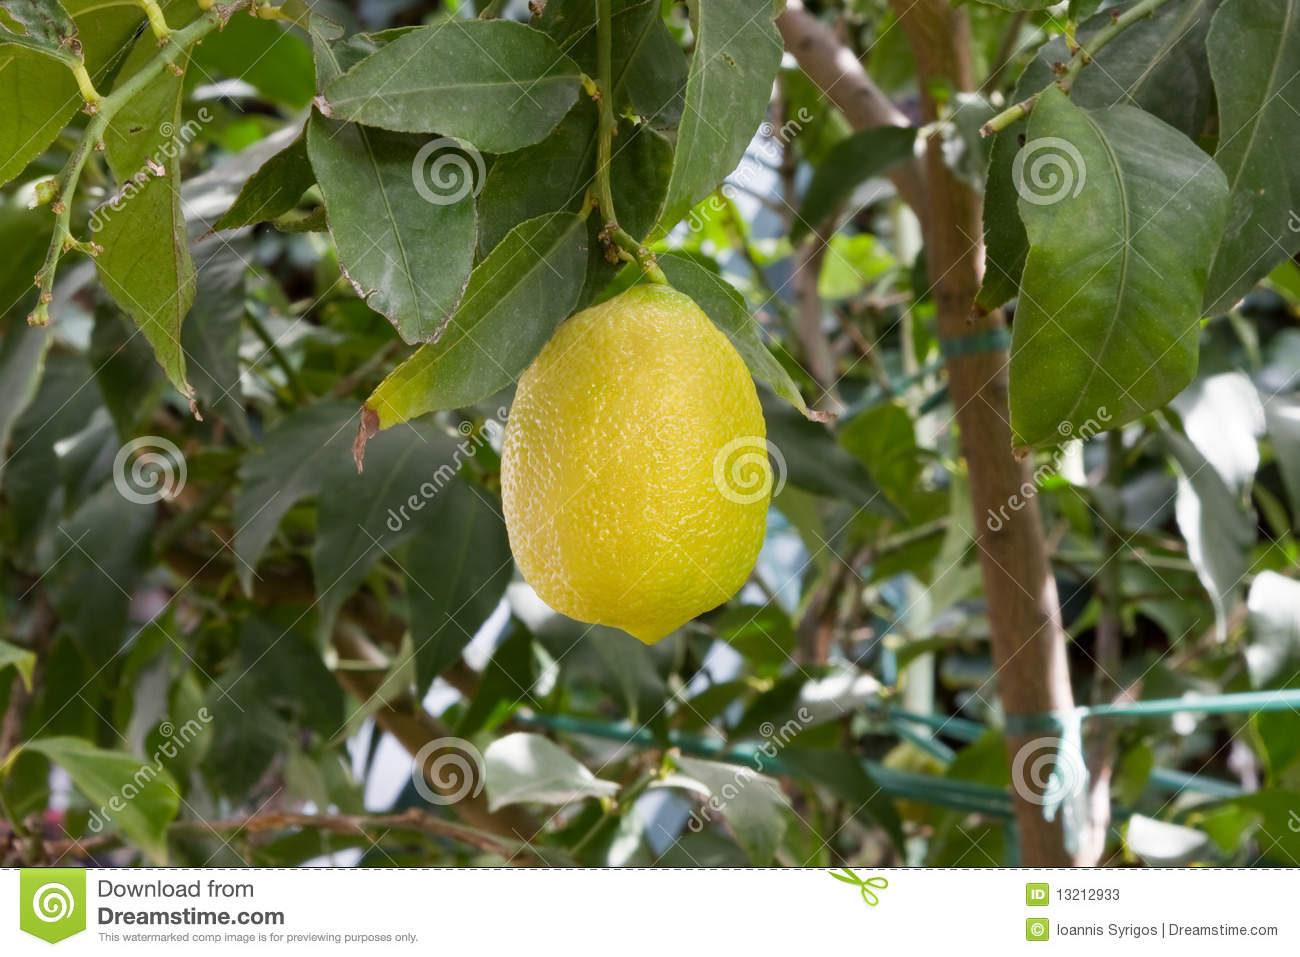 fools garden yellow lemon tree lyrics: